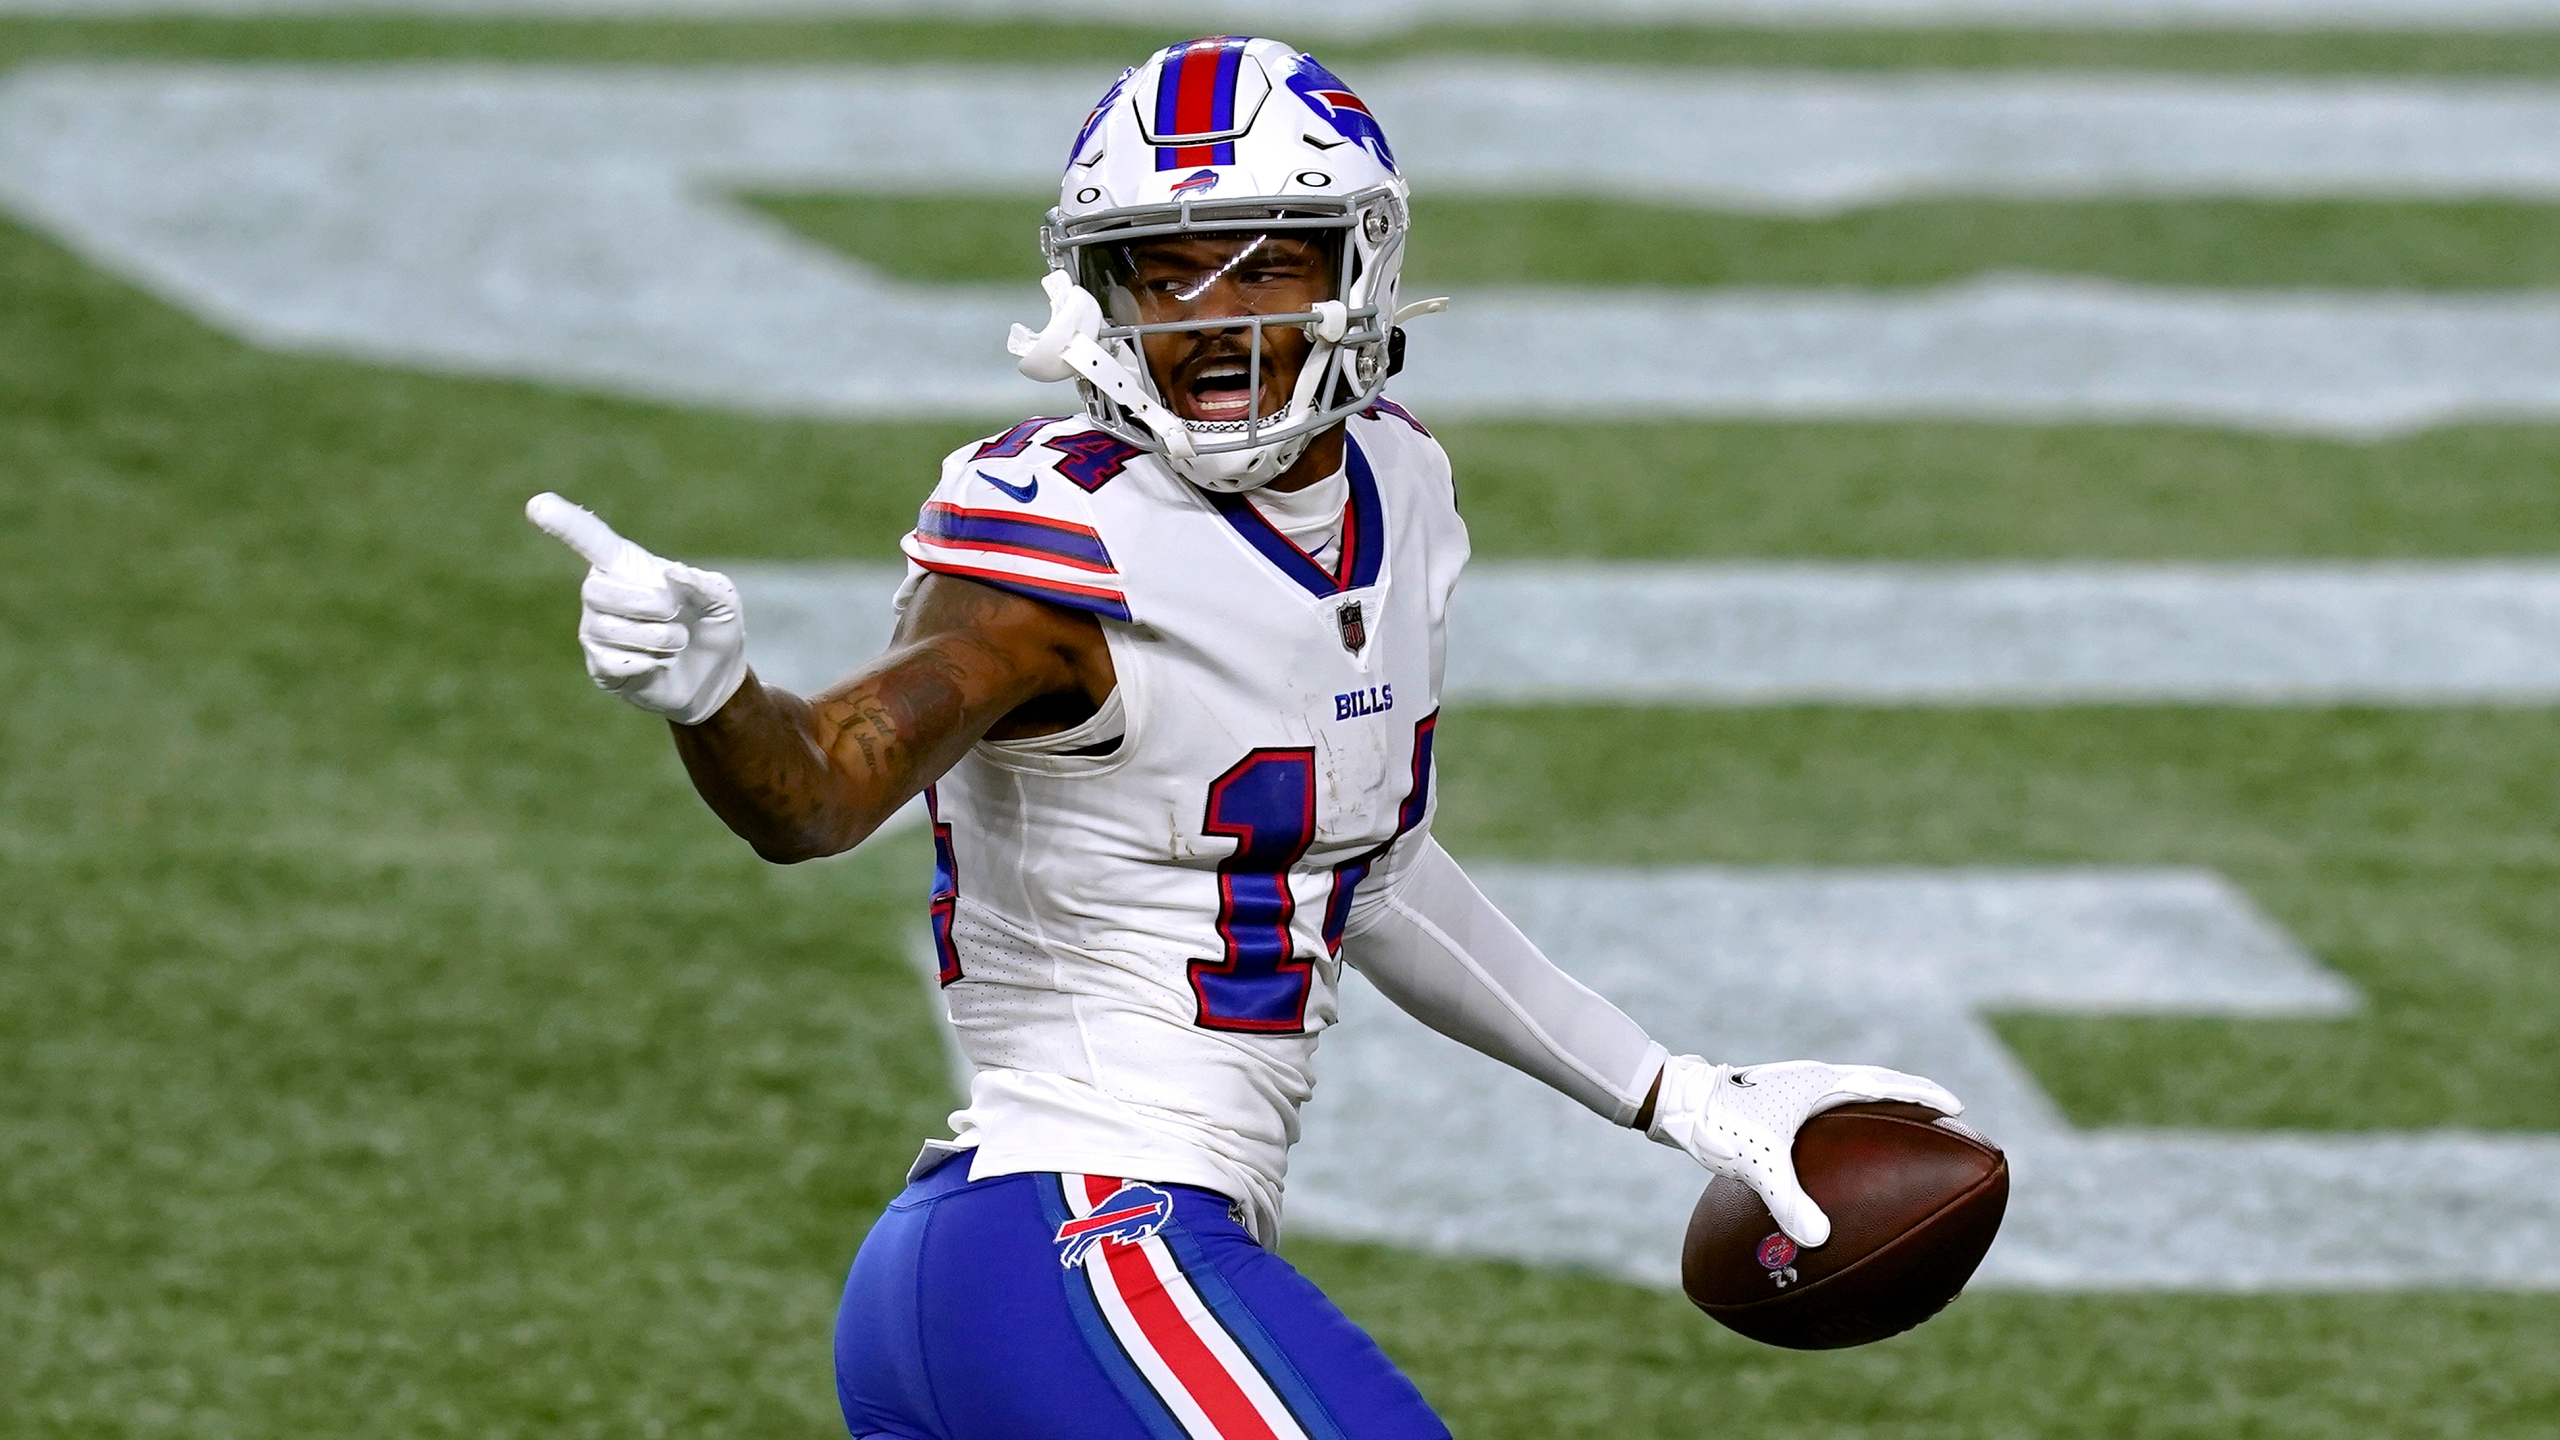 Bills WR Stefon Diggs: 'We don't have to do anything different' when it comes to playoff approach   RochesterFirst